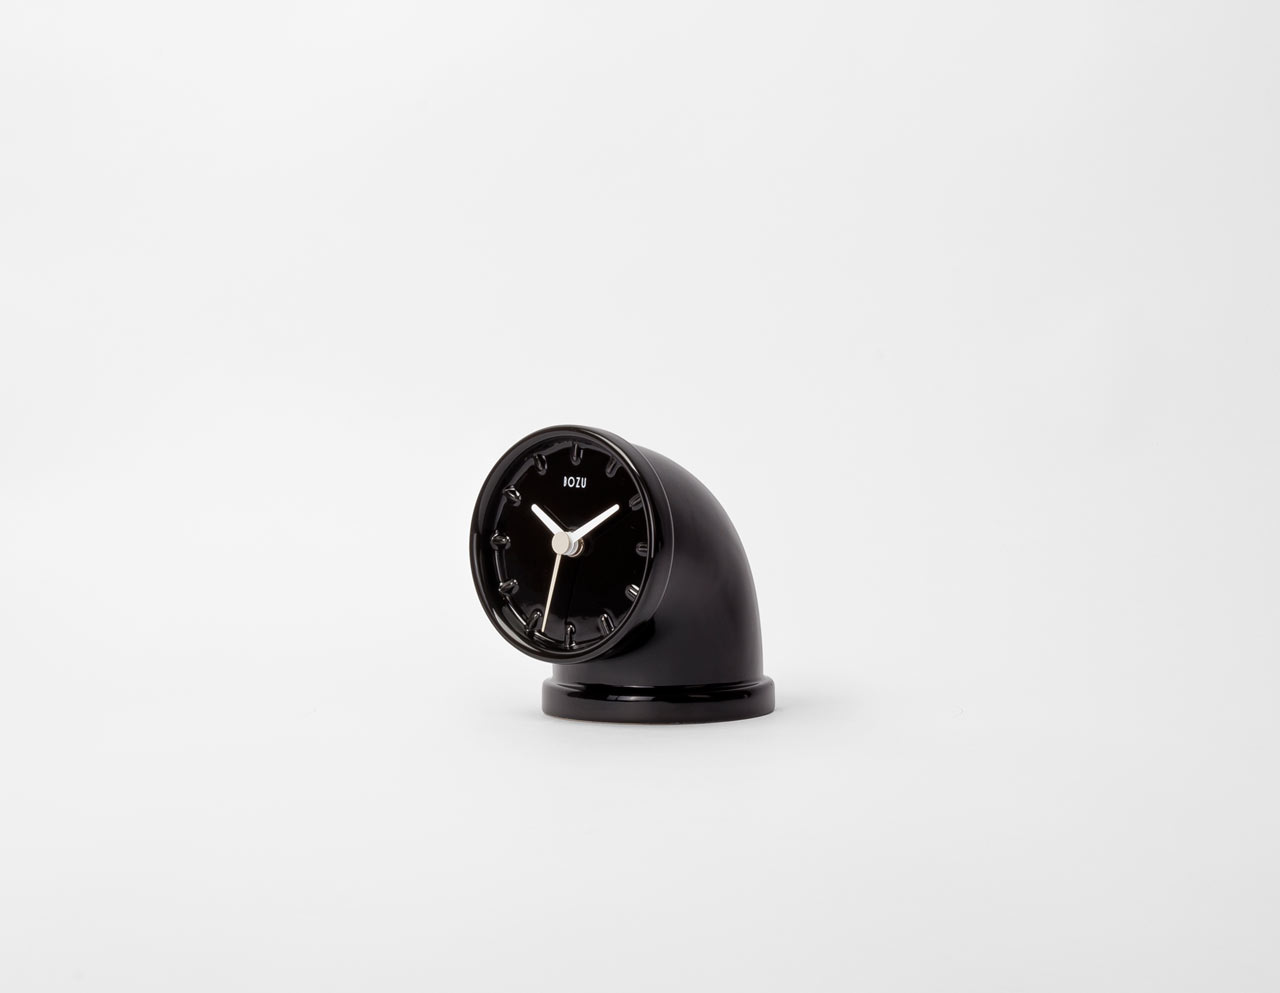 plumber-pipe-inspired-clock-design-andrea bellotto-bozu-industrial